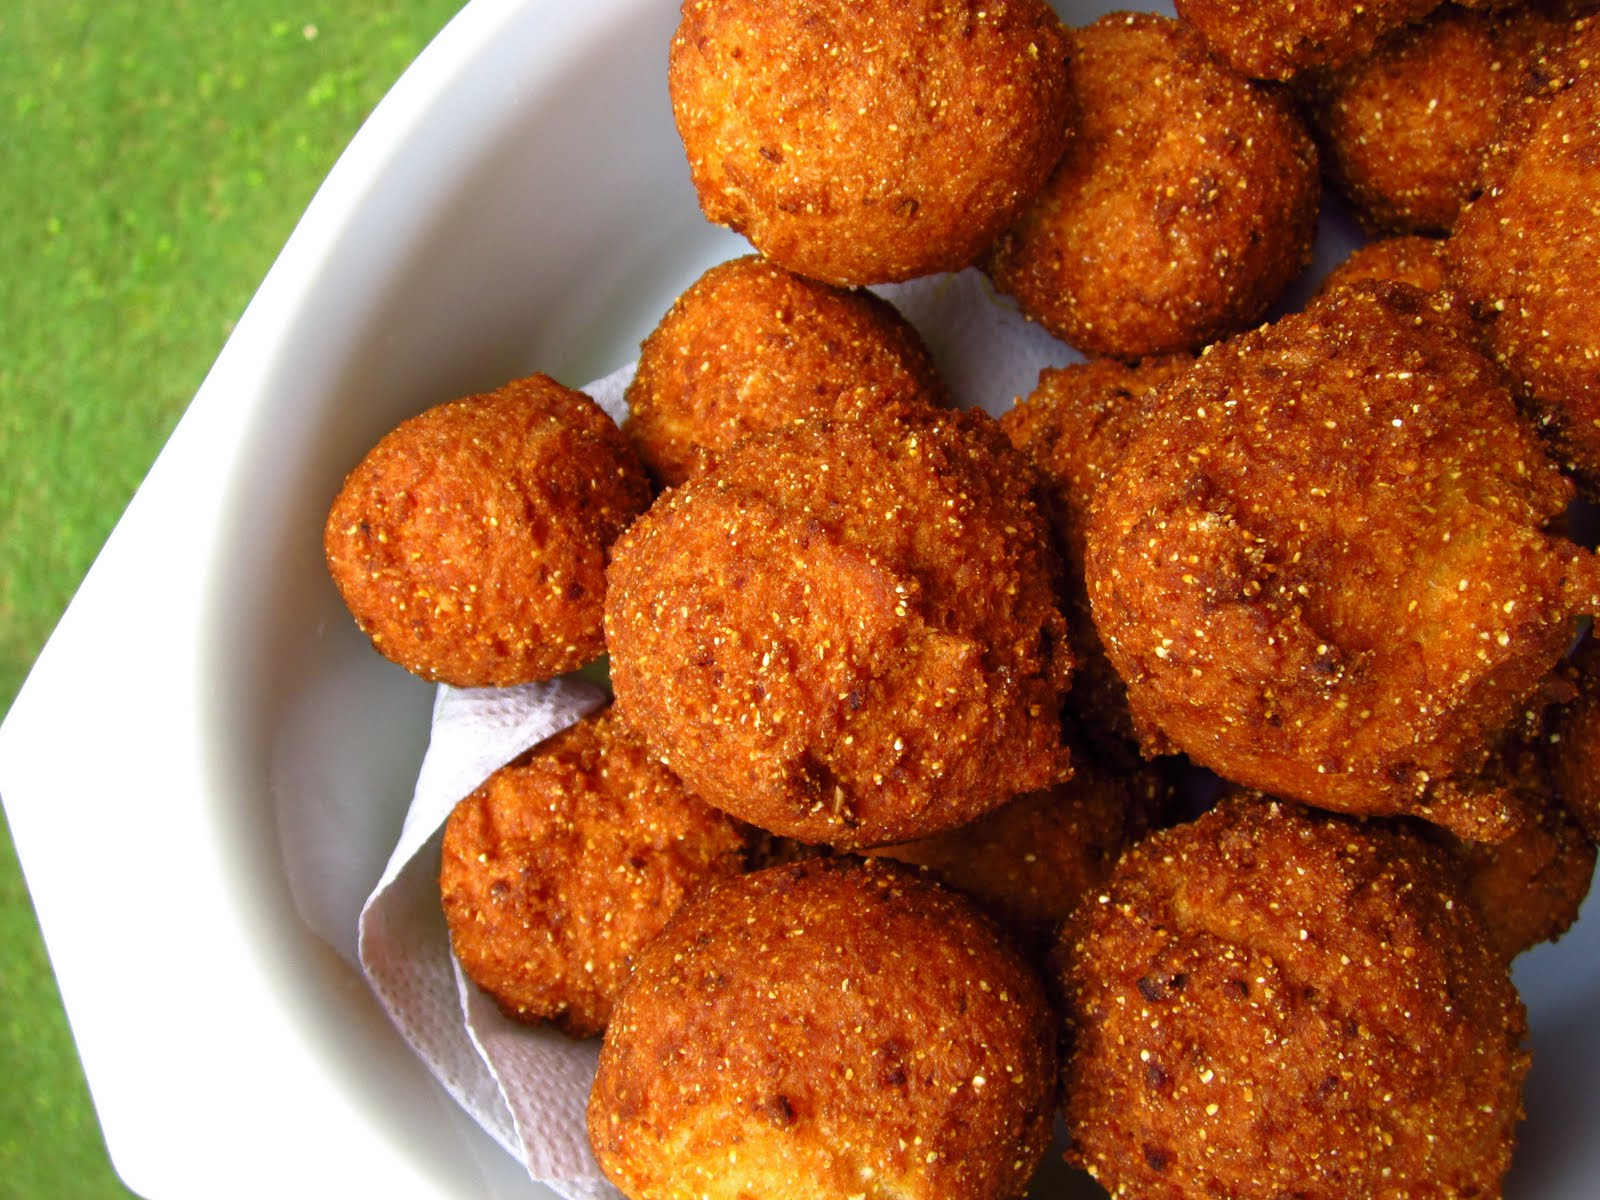 Dinner, Lunch and Gluten Free Hush Puppies!